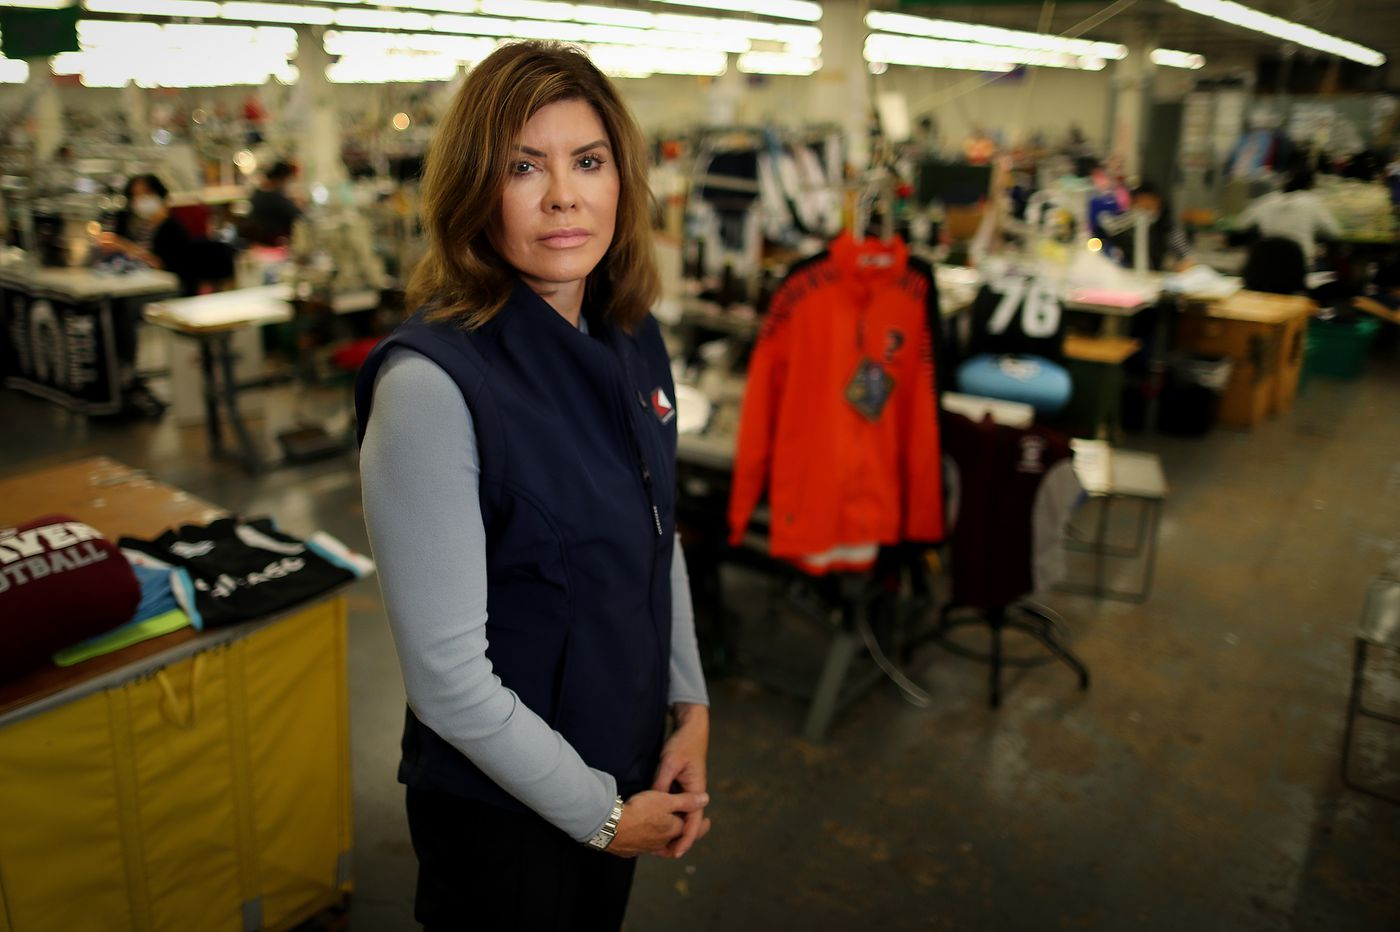 A Philly sports clothing firm picks its first female CEO and tasks her with 'making people aware that we exist'